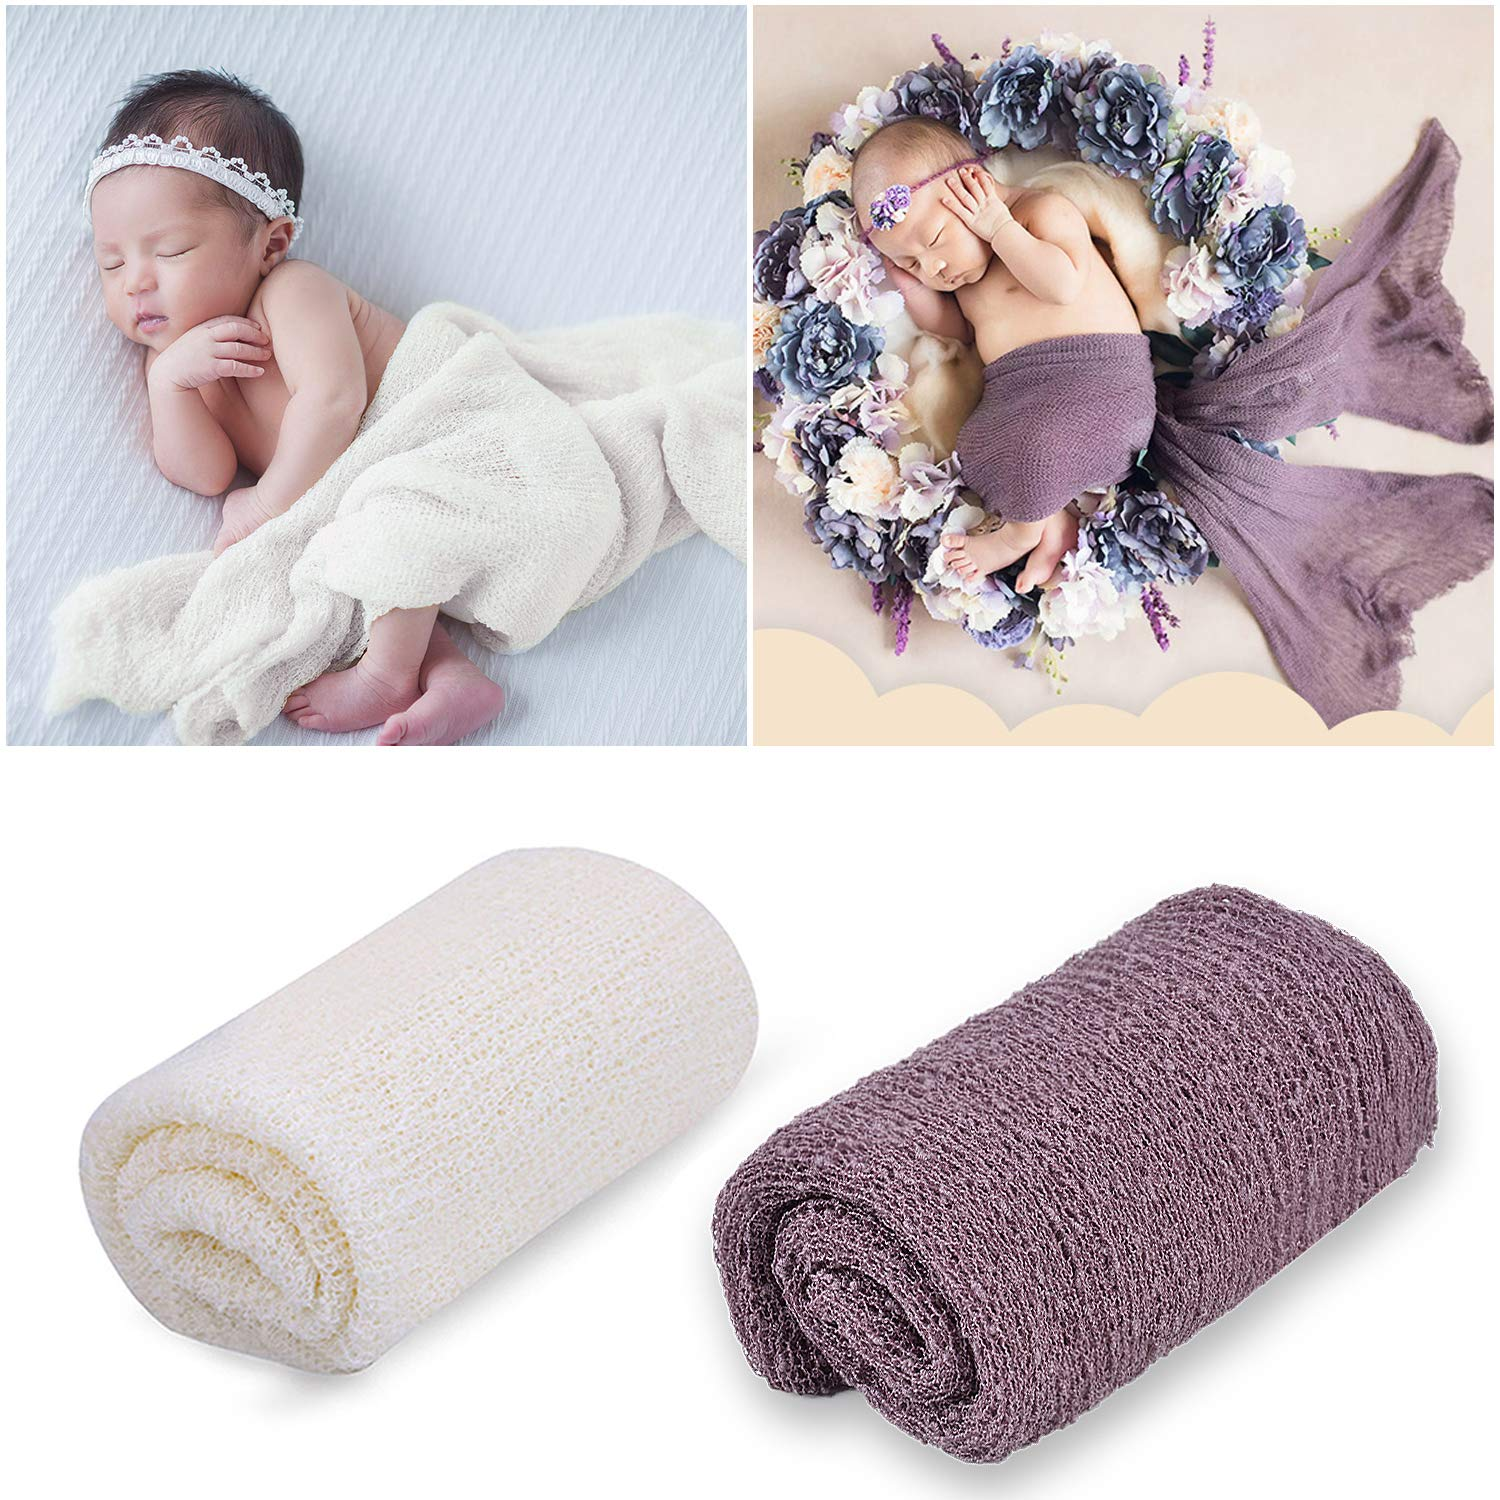 Newborn Photography Props, Aniwon Baby Photo Props Long Ripple Wraps Blanket Wraps for Baby Boys Girls (Grey & Milk White)